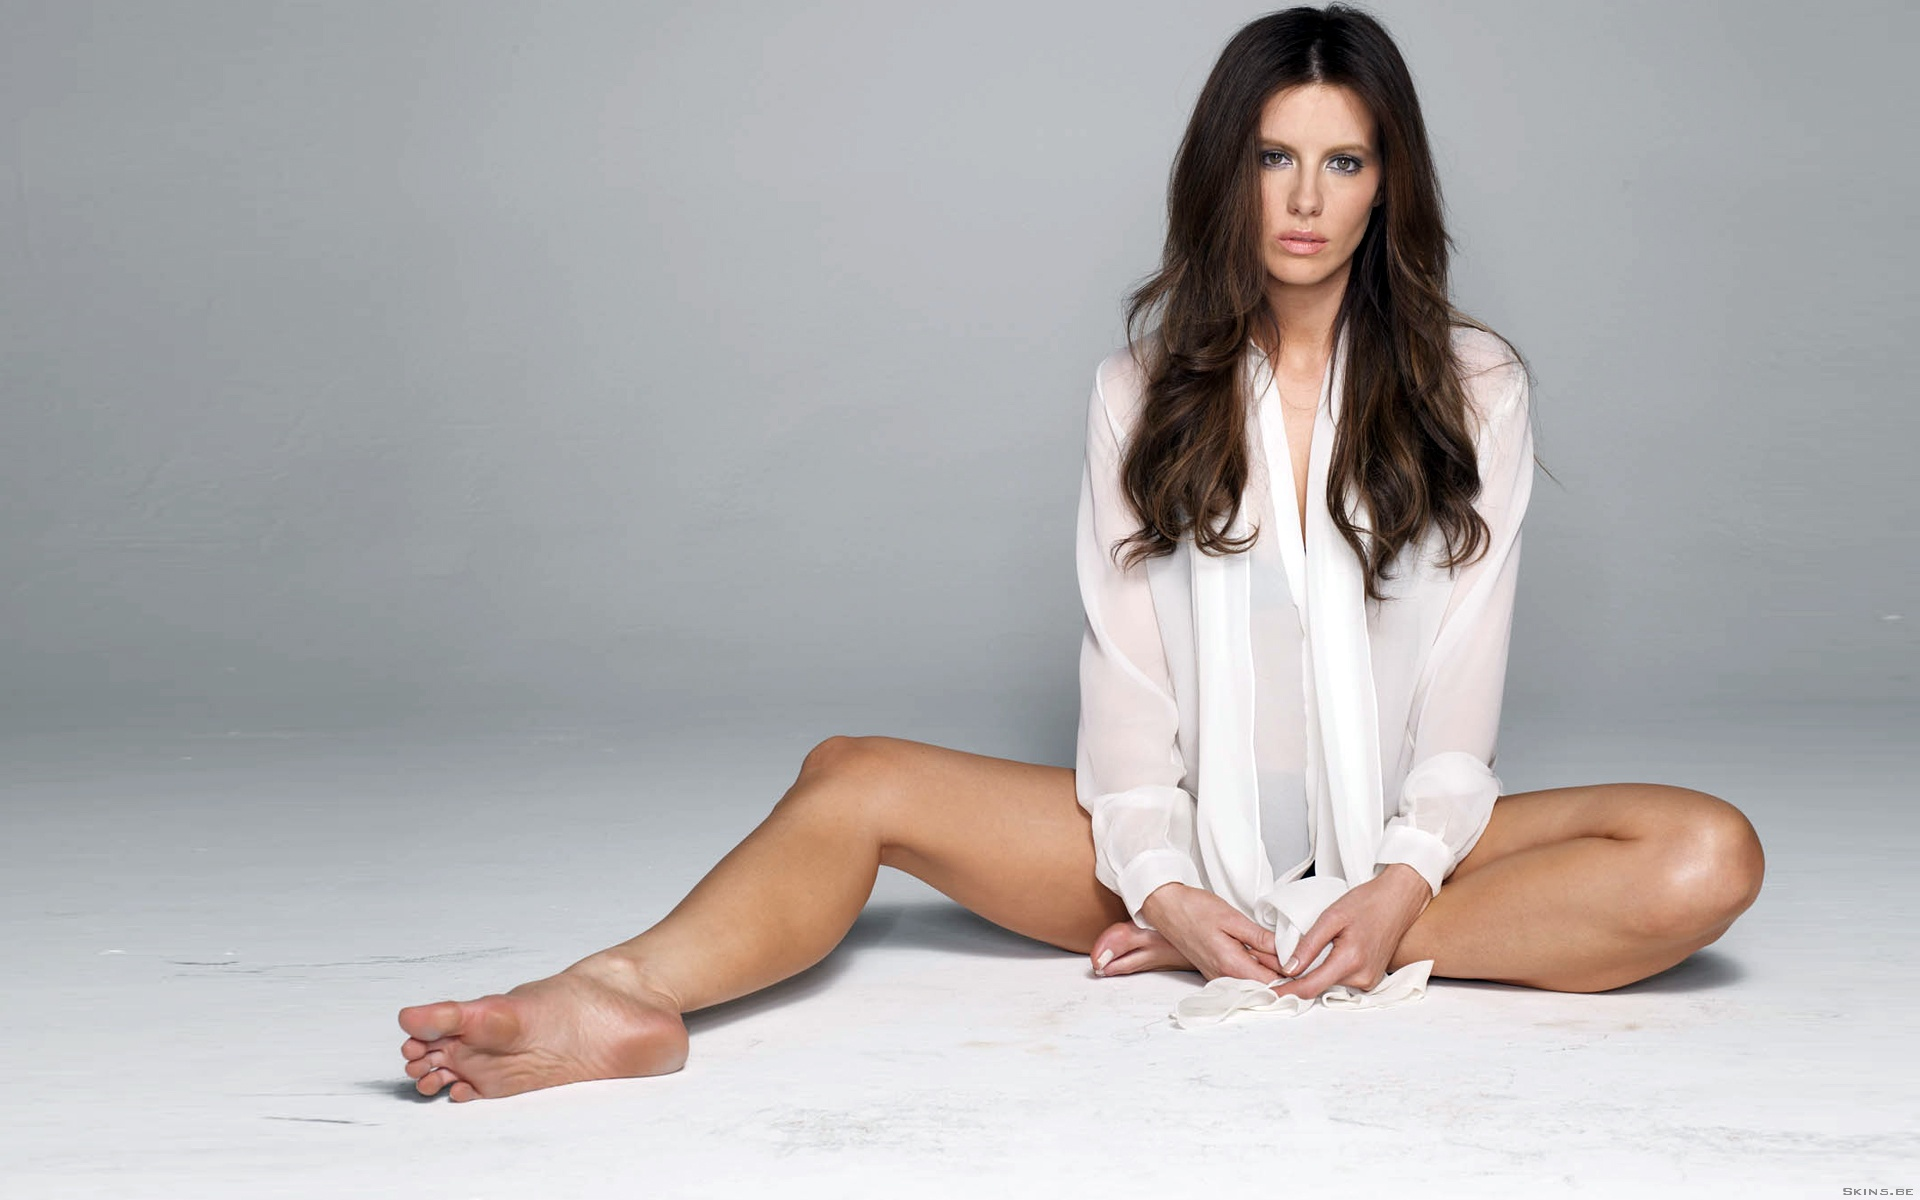 Kate Beckinsale Feet wallpaper 112663 Kate Beckinsale Trivago